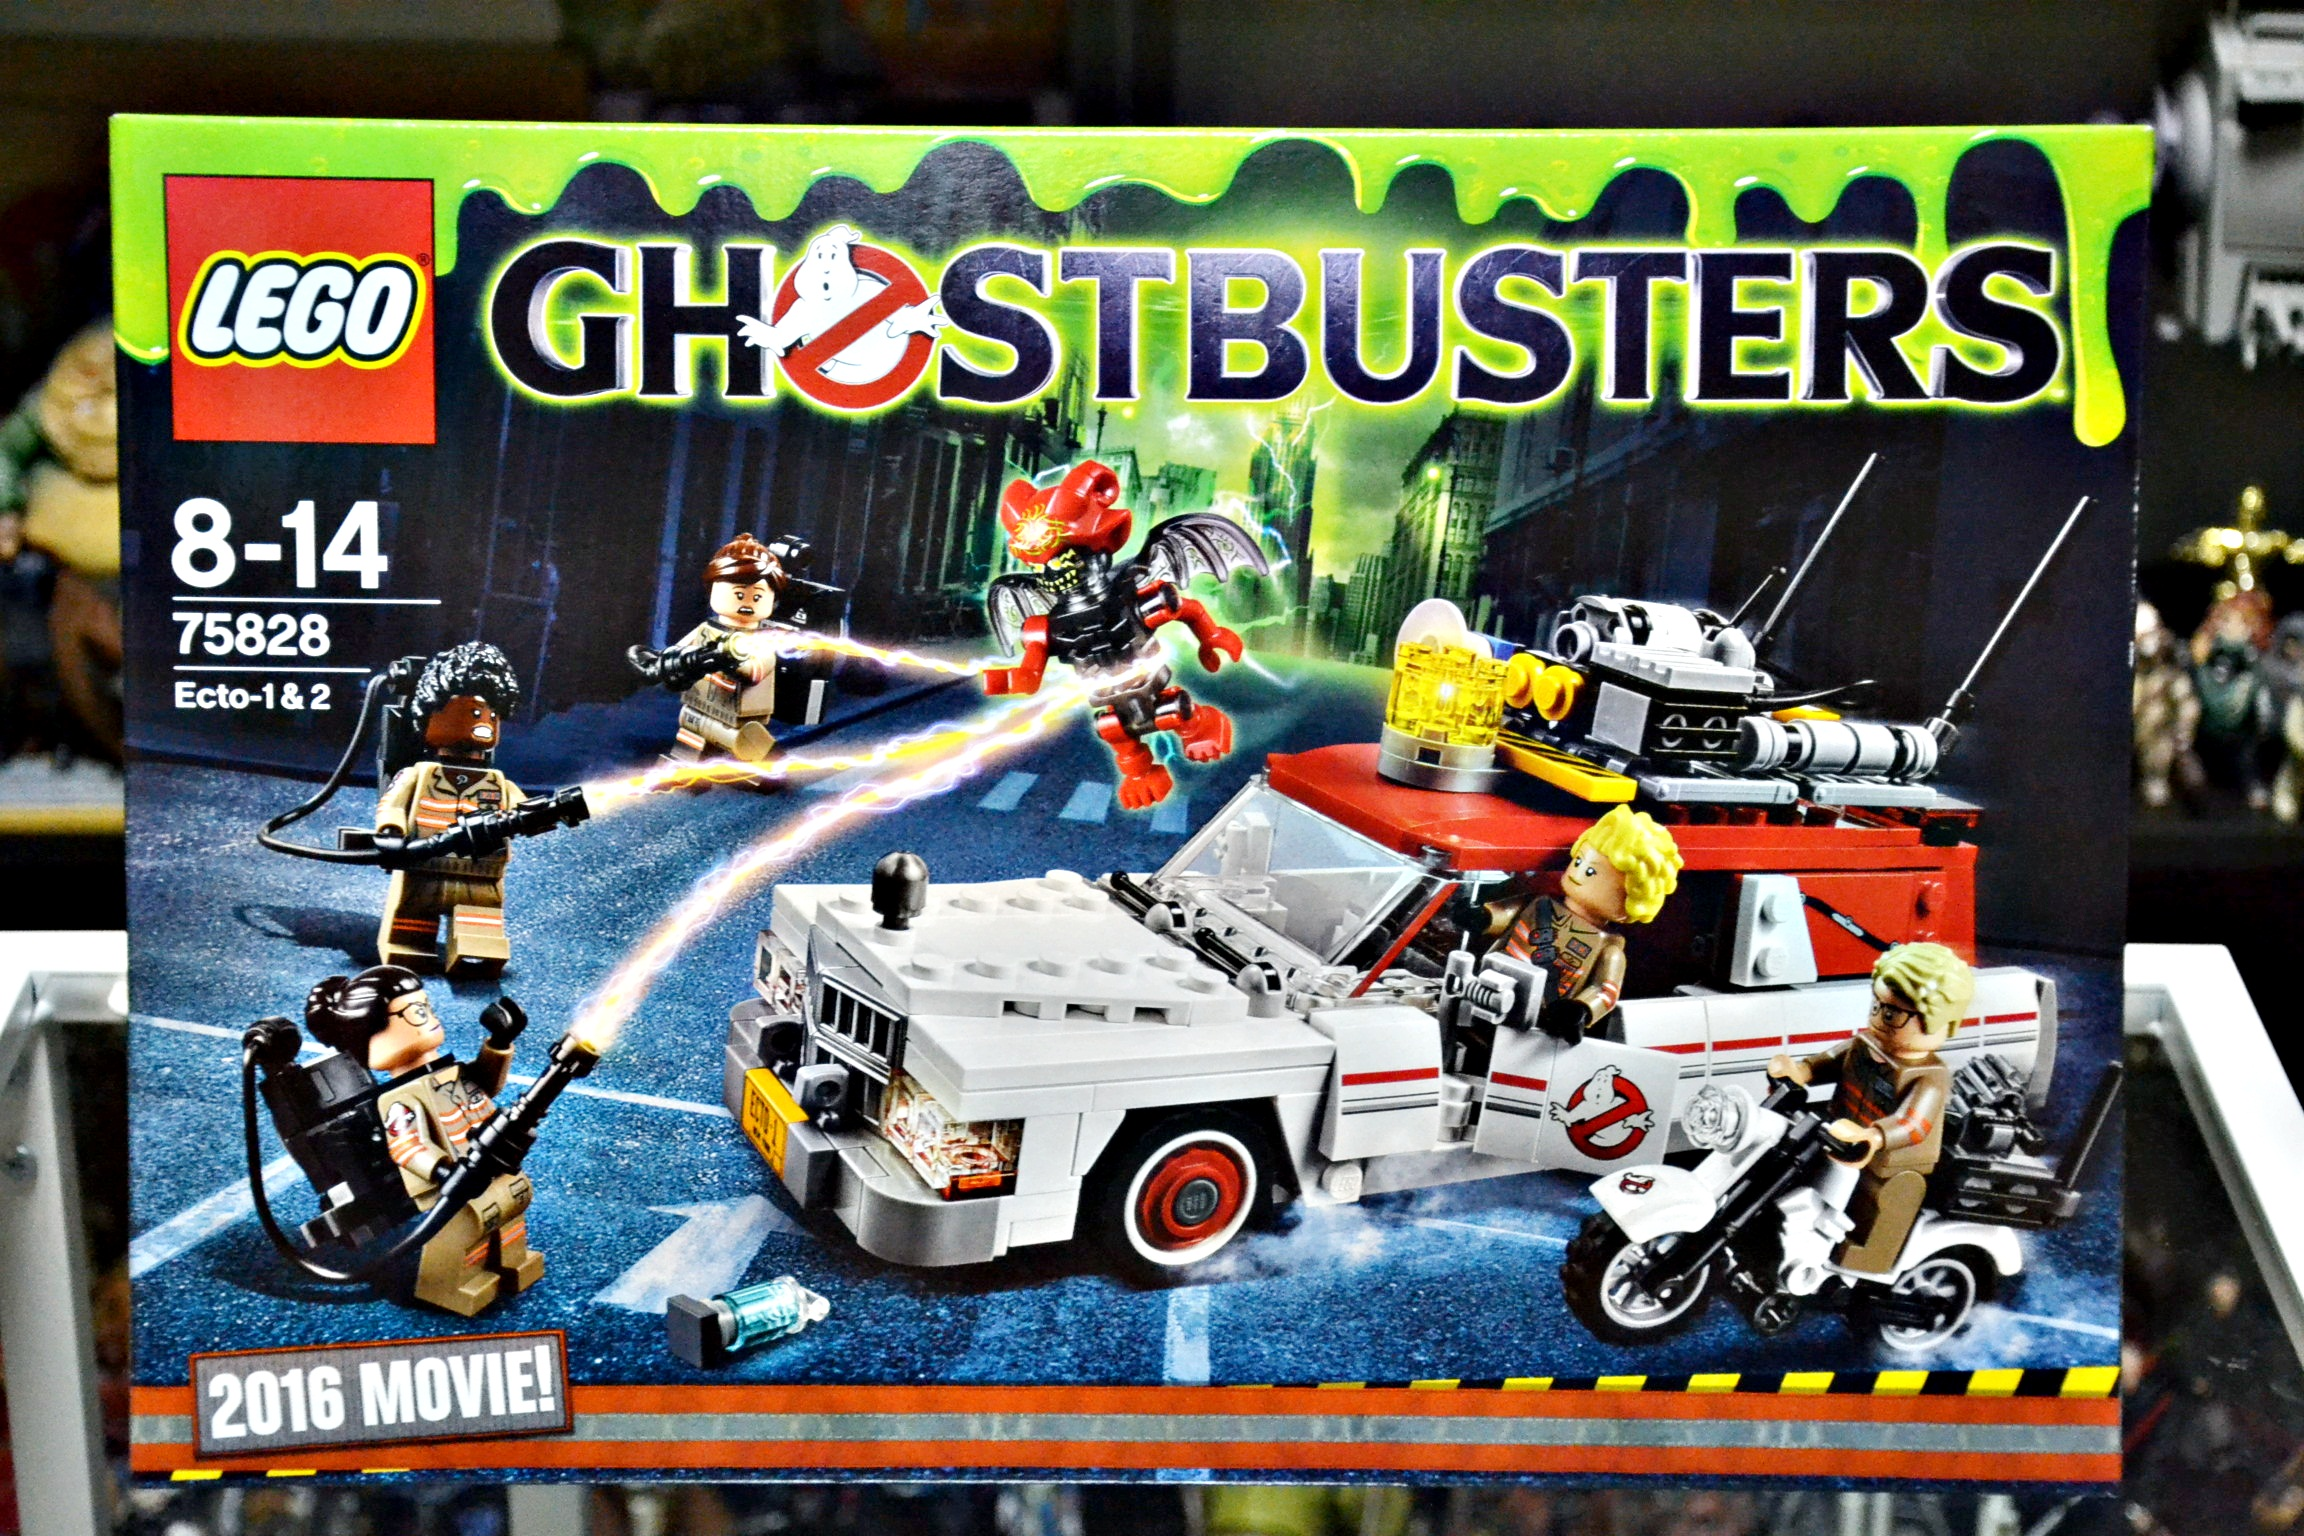 LEGO Ghostbusters Ecto-1 & Ecto-2 - 2016 Movie